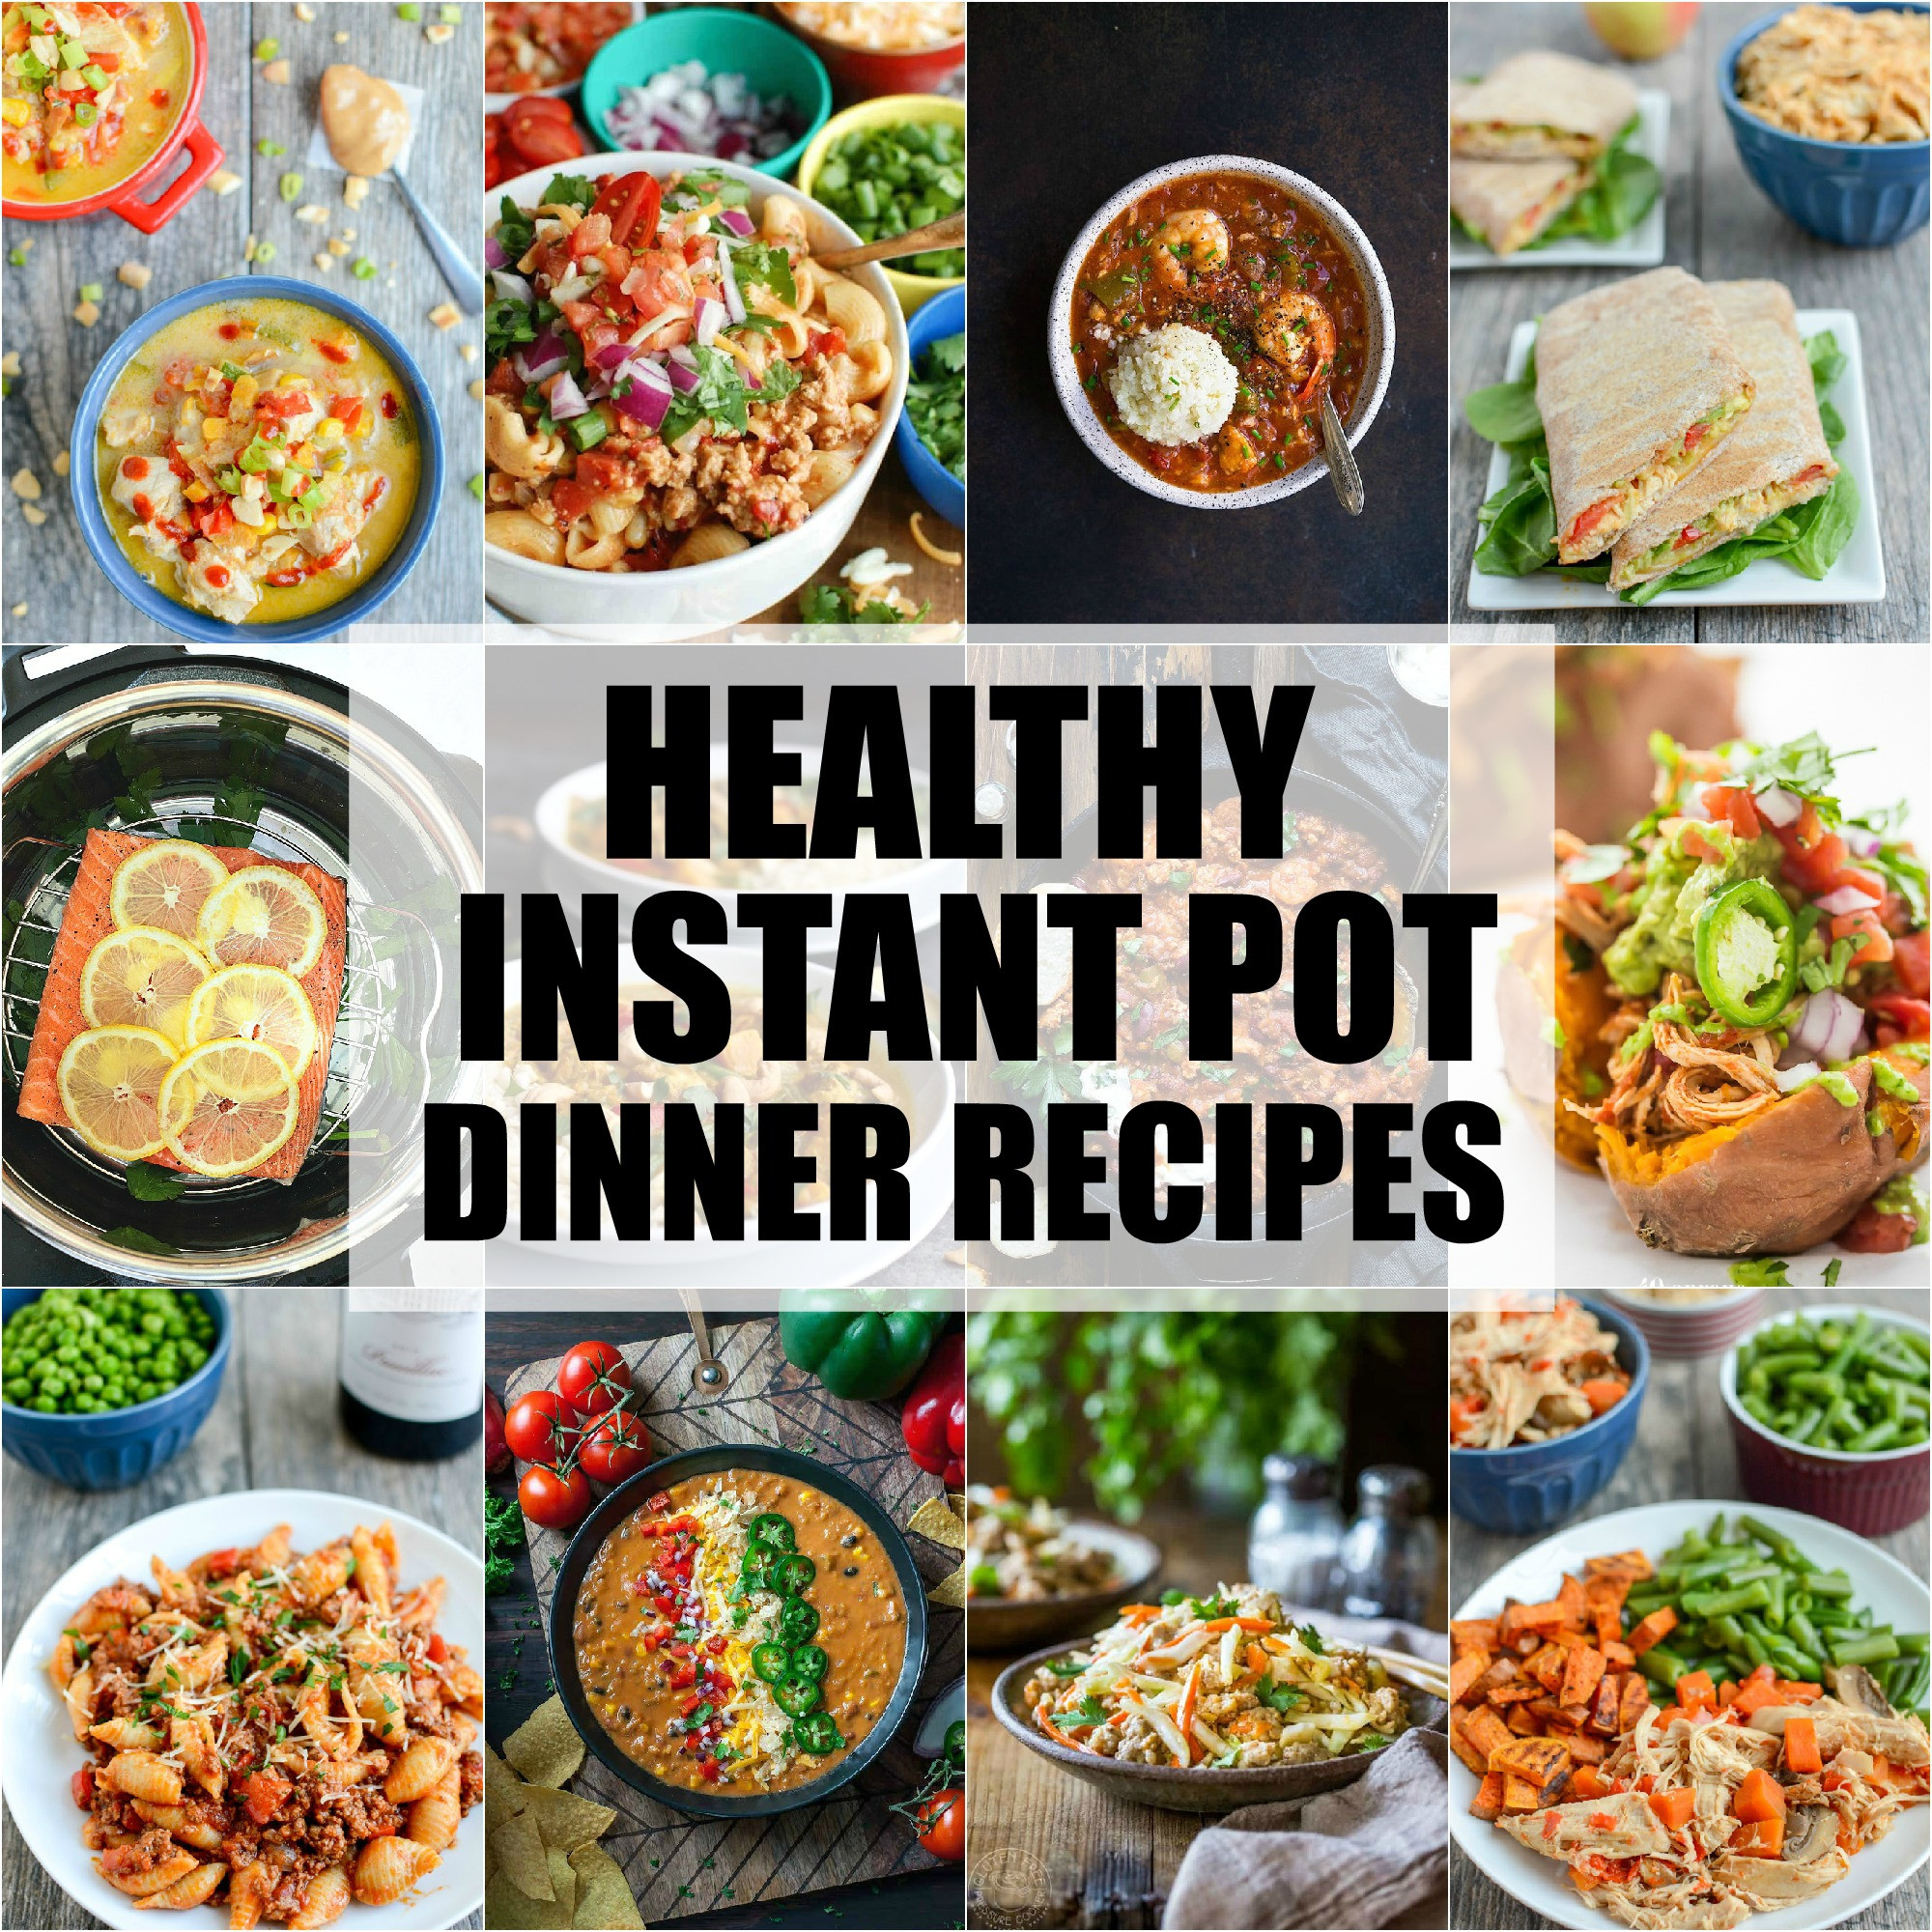 Instant Pot Recipes Healthy  Healthy Instant Pot Dinner Recipes